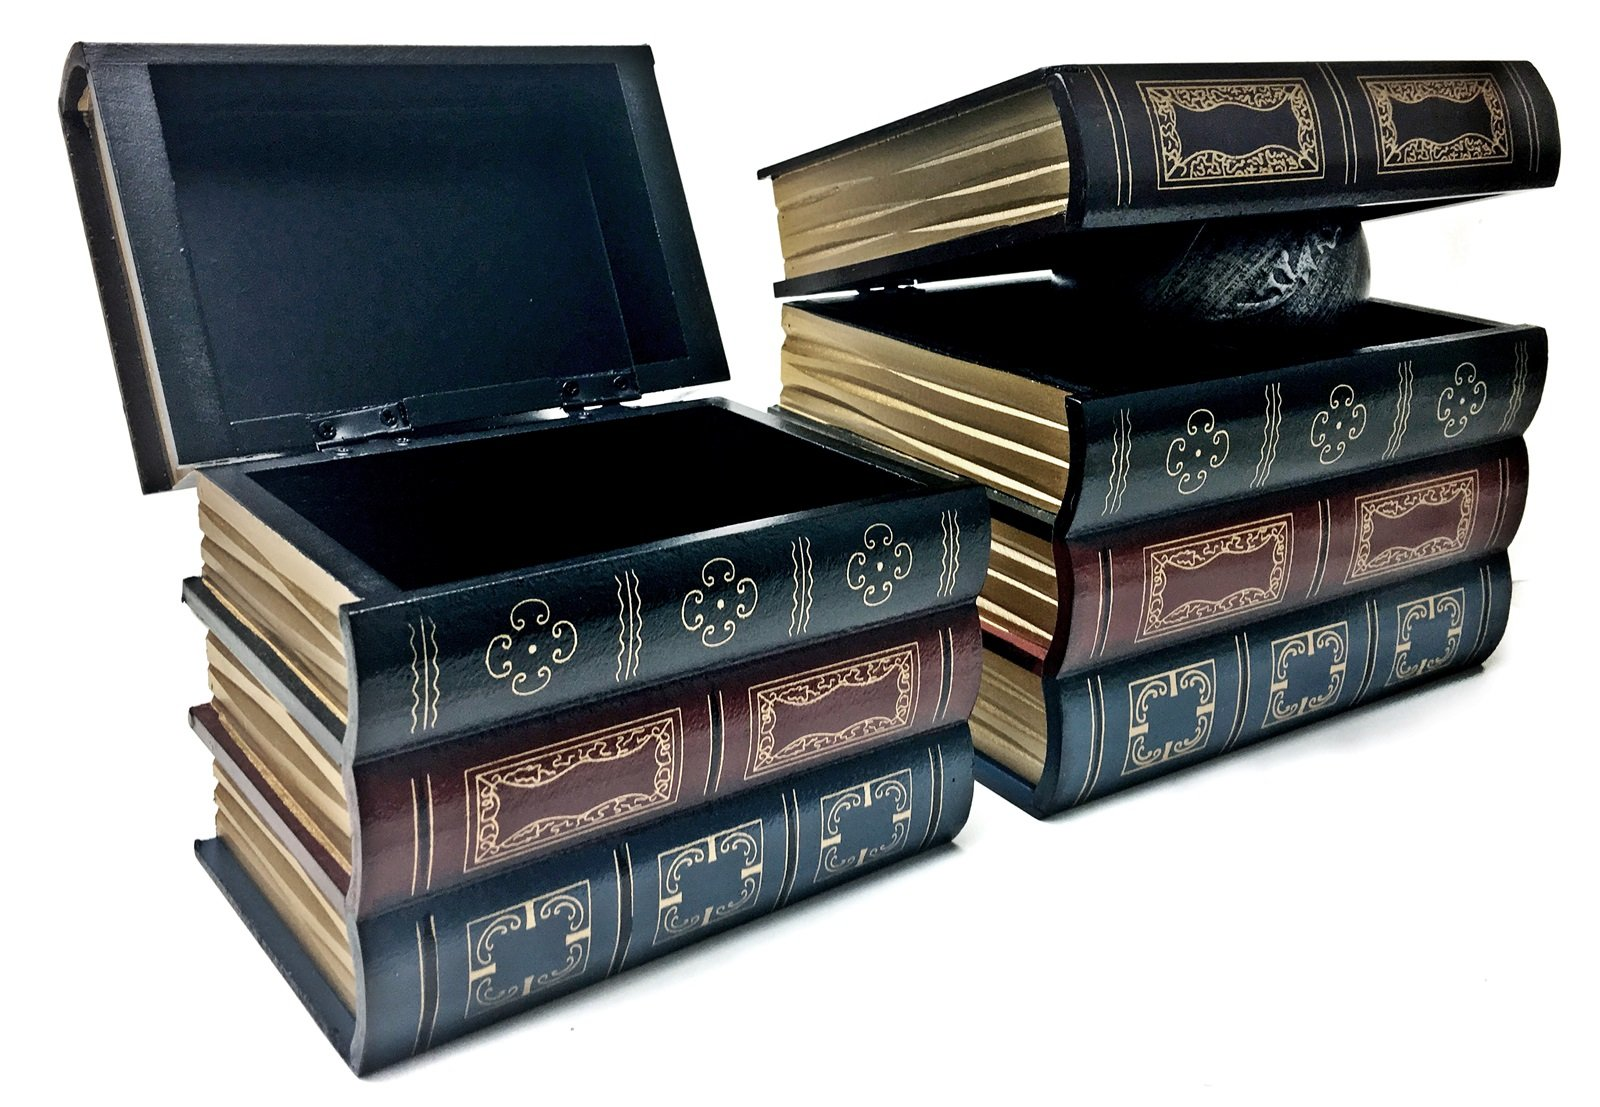 Bellaa 25419 Book Box Bookends w/Hidden Storage 2 pcs Set Library by Bellaa (Image #2)